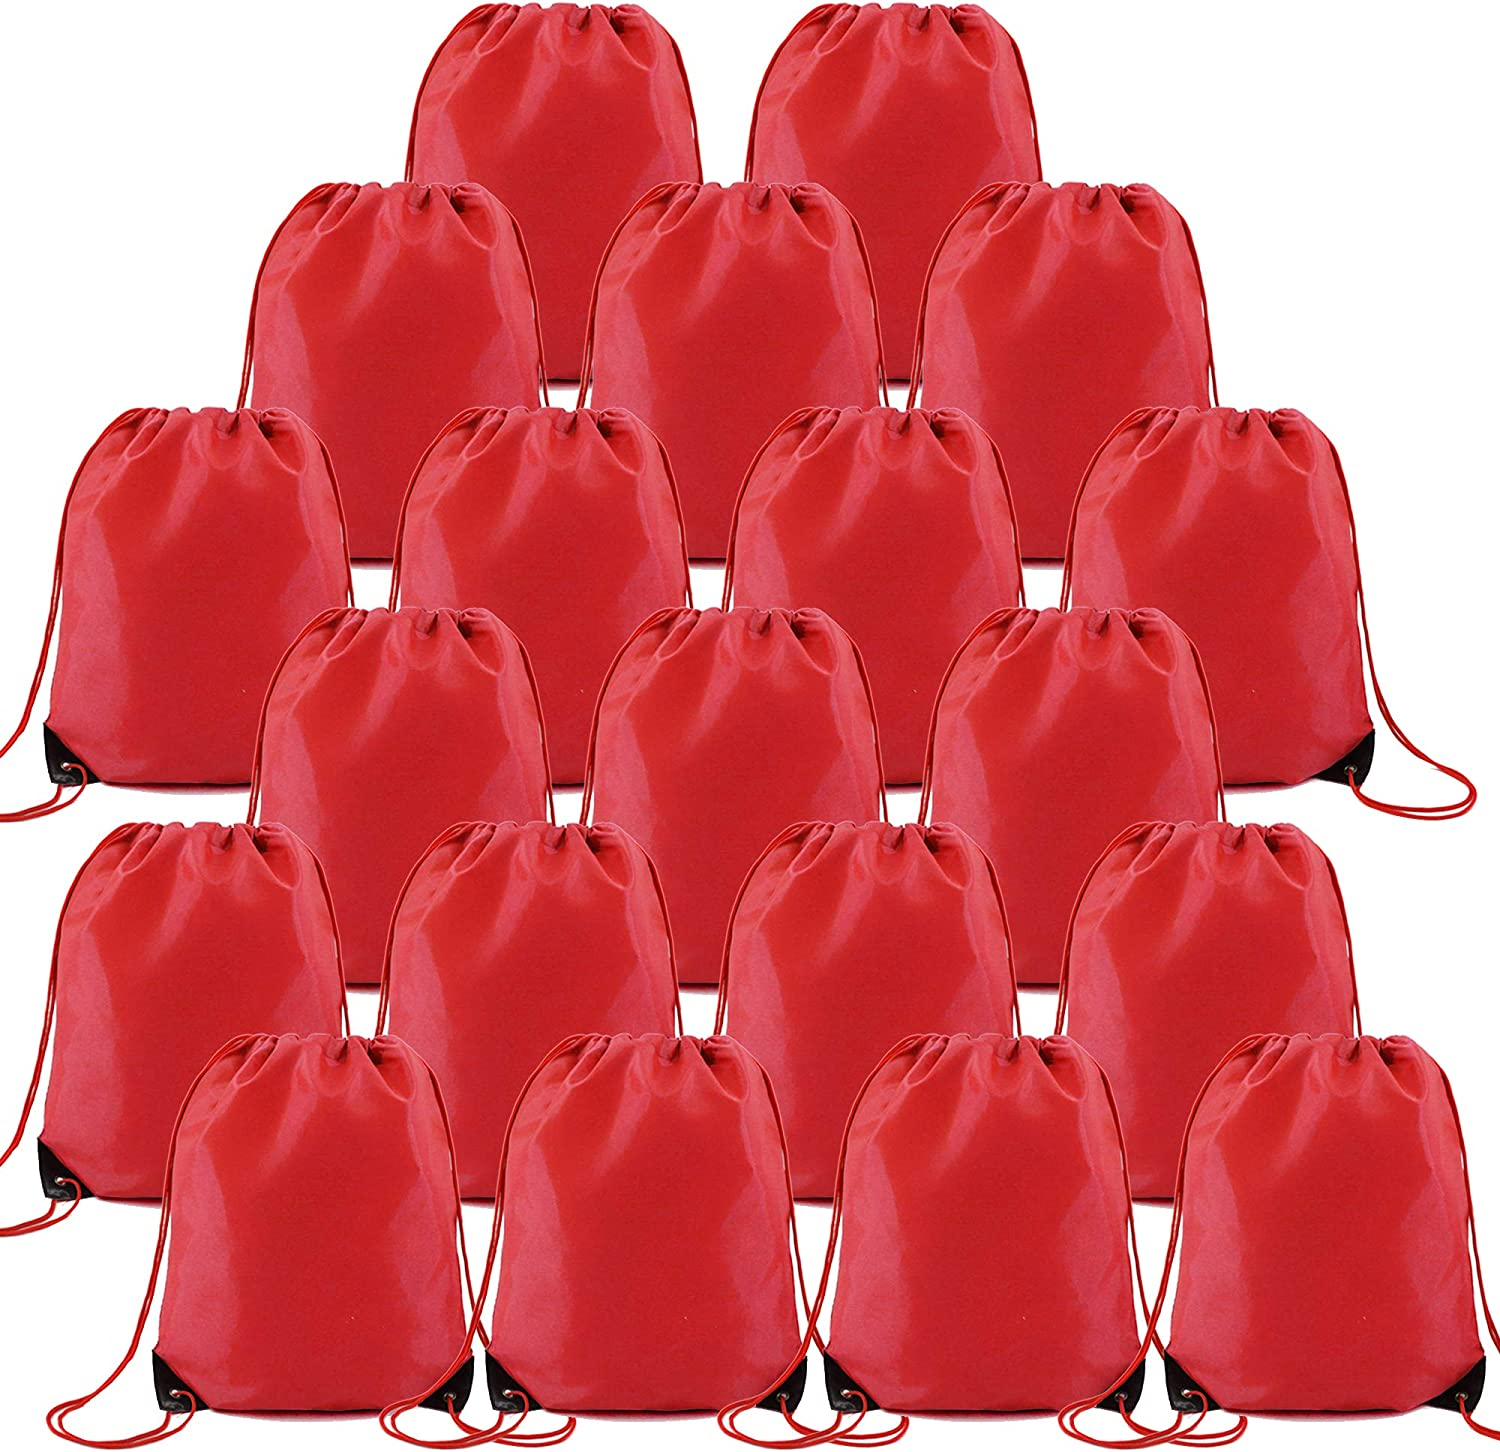 Red Drawstring Bags Bulk for Birthday Party Gym Sports Polyester Custom Multipurpose Cinch Sacks for Heat Vinyl and Tie Dye Pull String Sackpack Set of 20